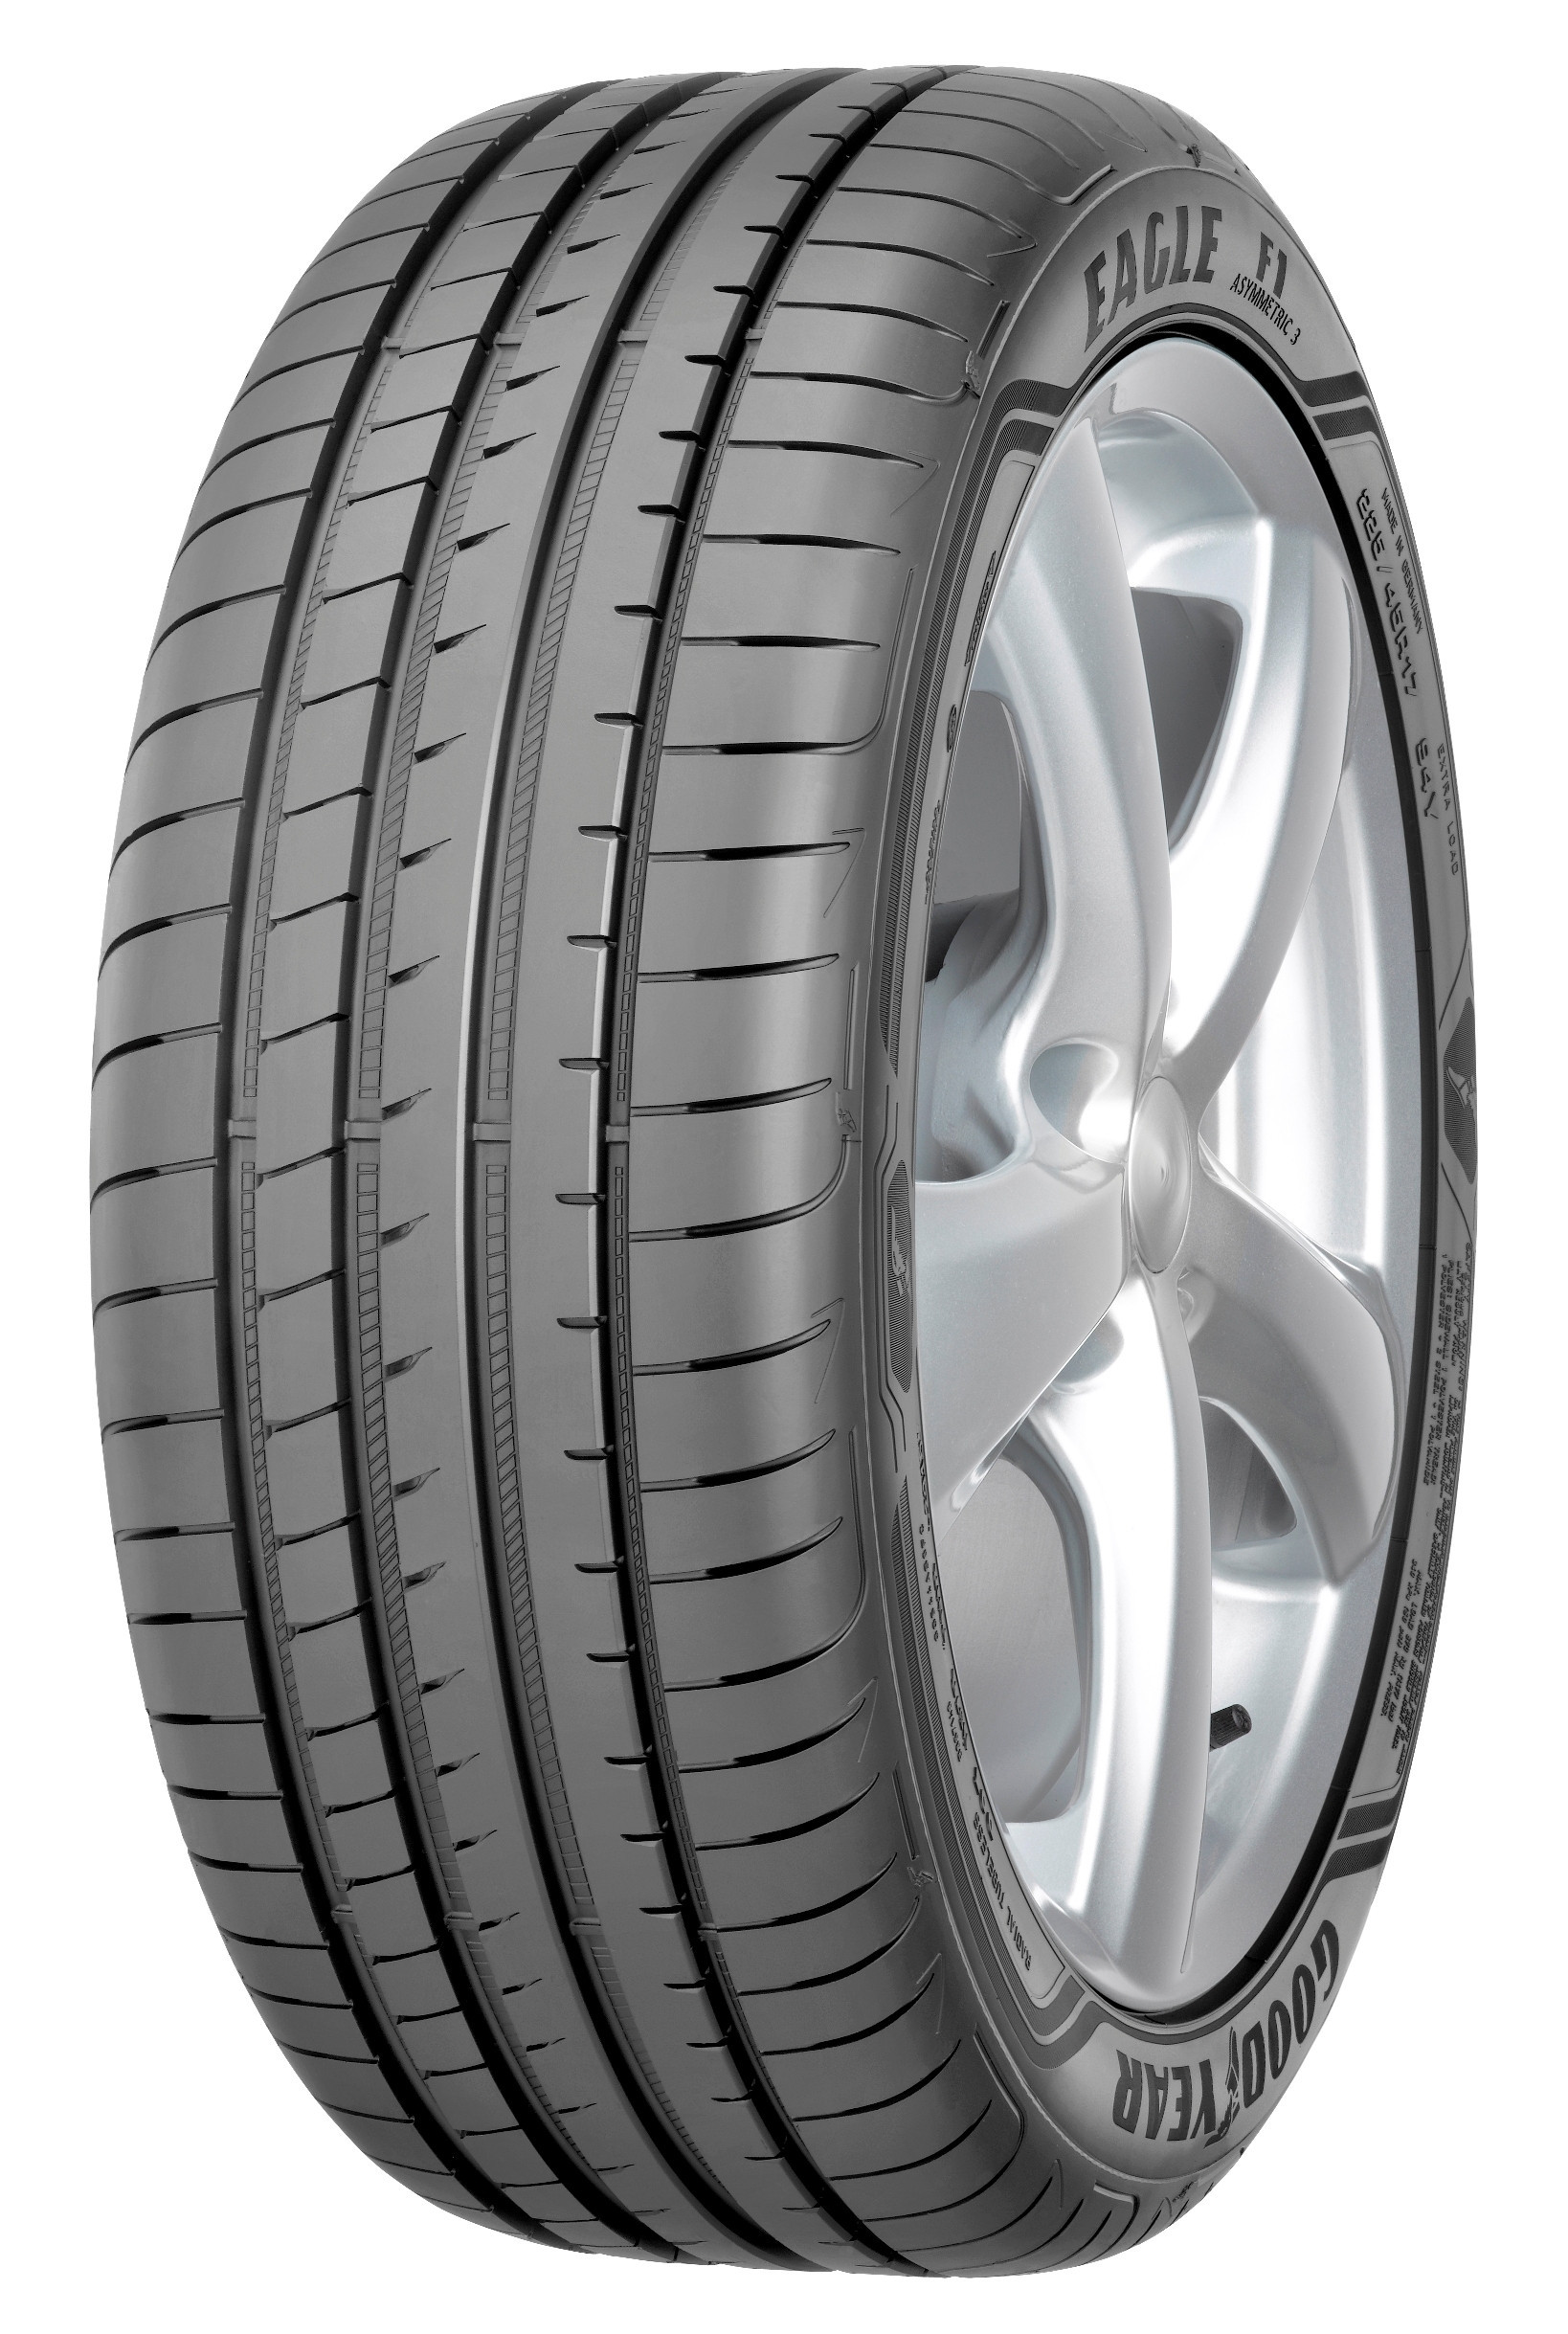 Anvelopa Vara 225/45R18 95Y Goodyear Eagle F1 Asymmetric 3 Xl